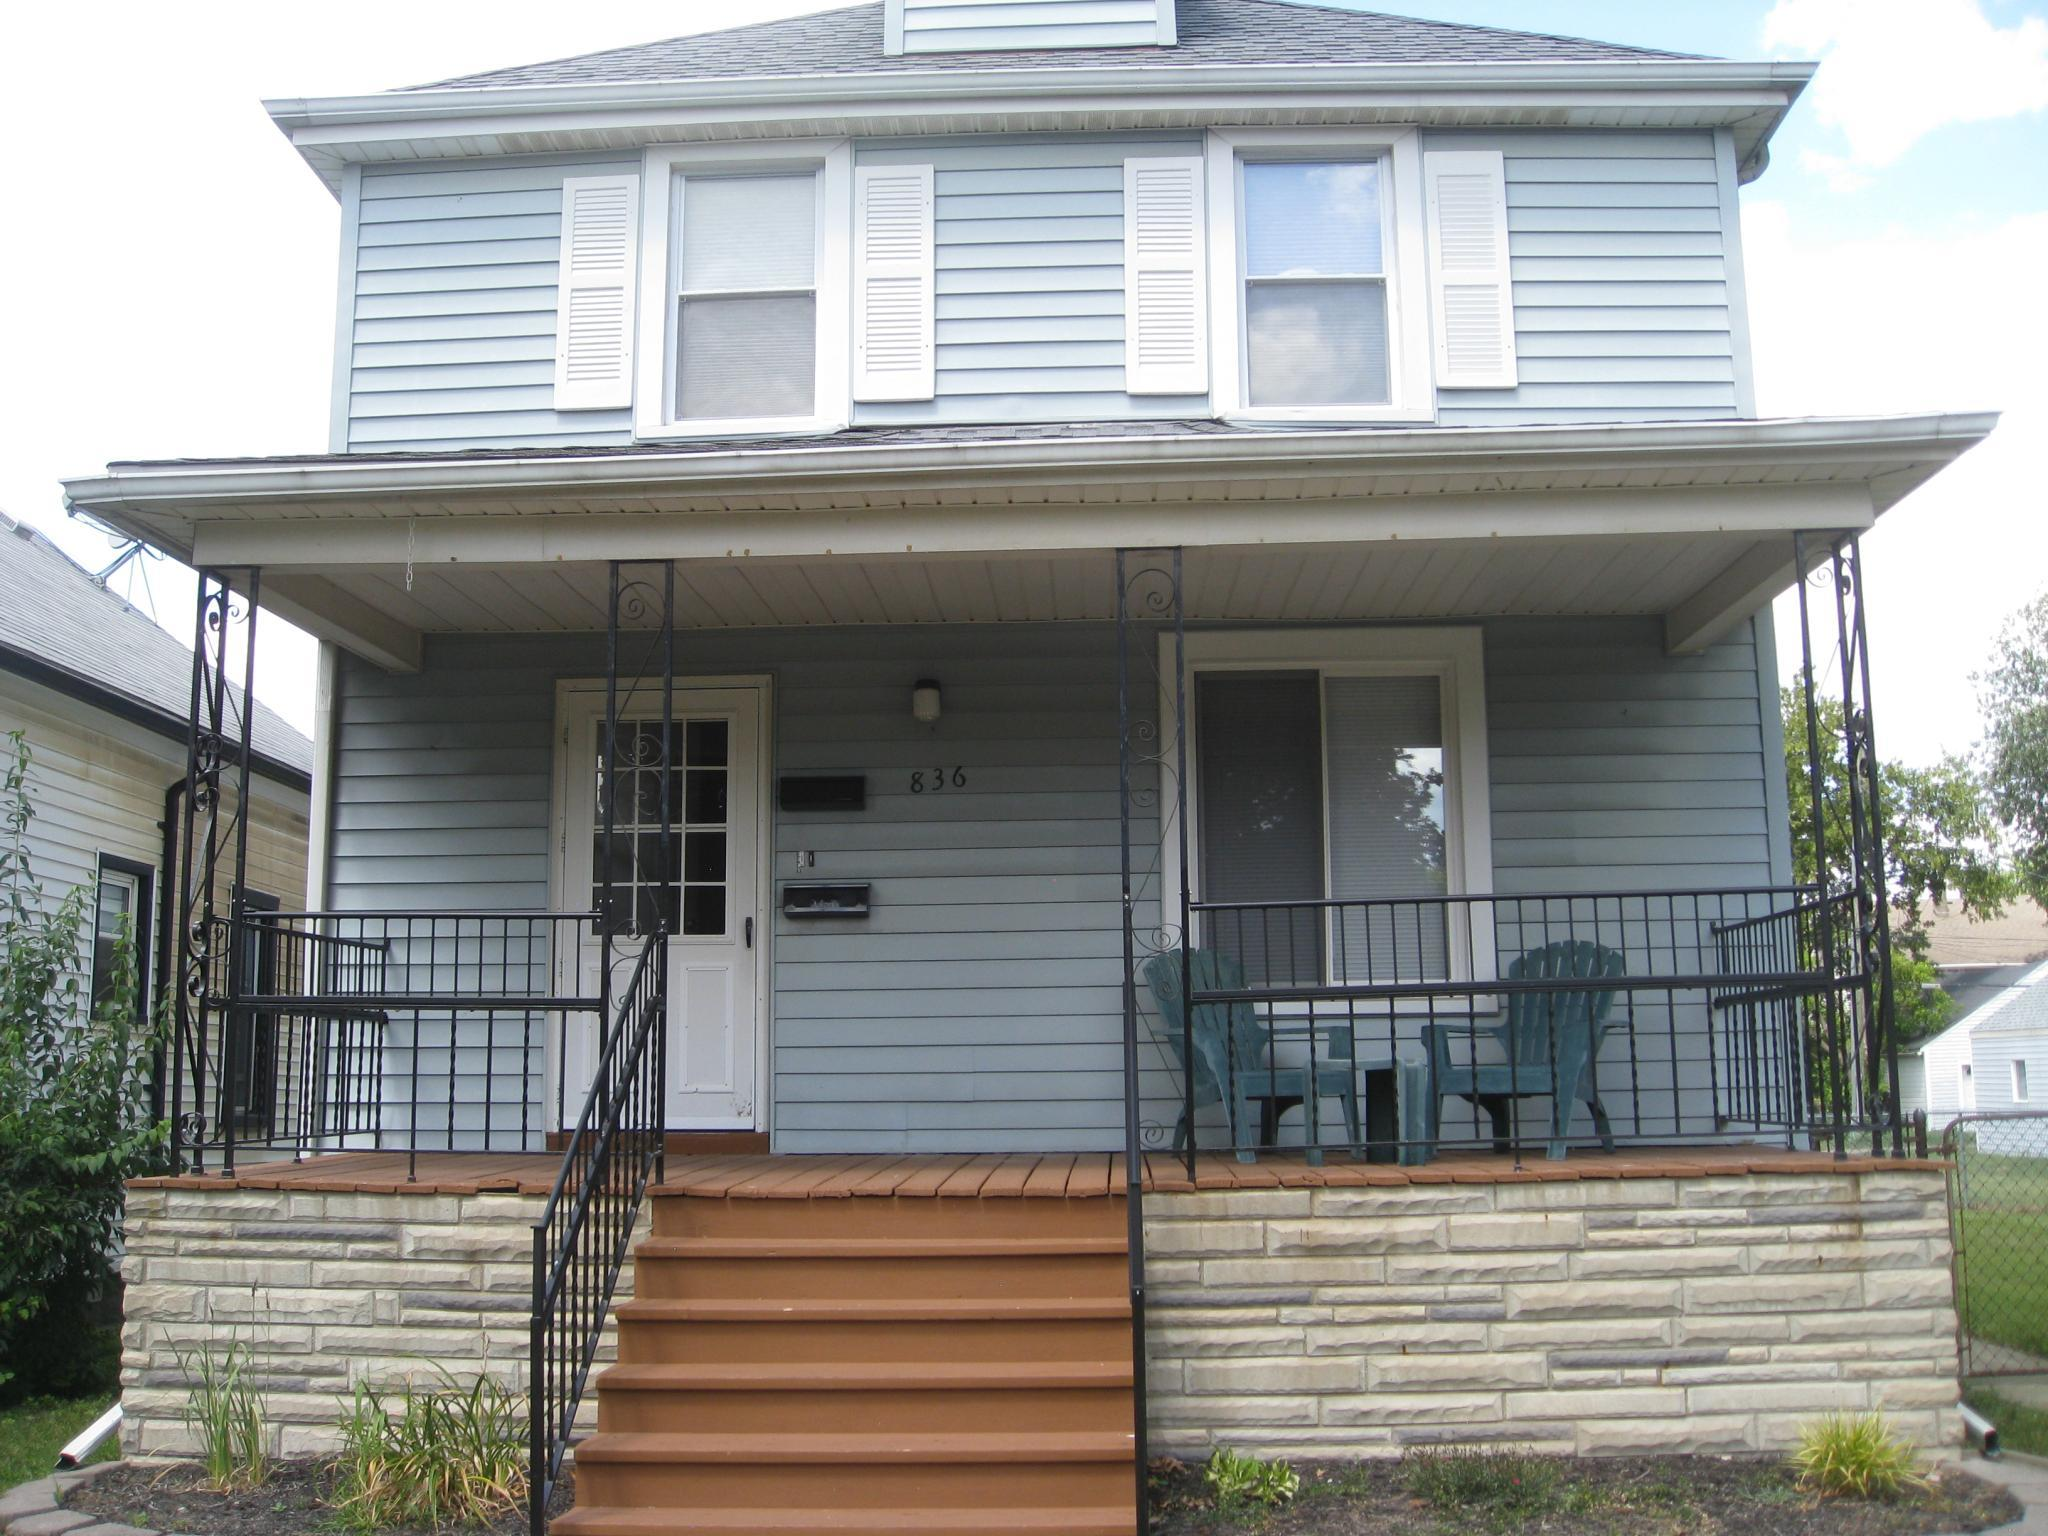 836 Orchard St, Wyandotte, MI 48192 - 2 Bed, 1 Bath Single-Family Home For  Rent - 12 Photos   Trulia